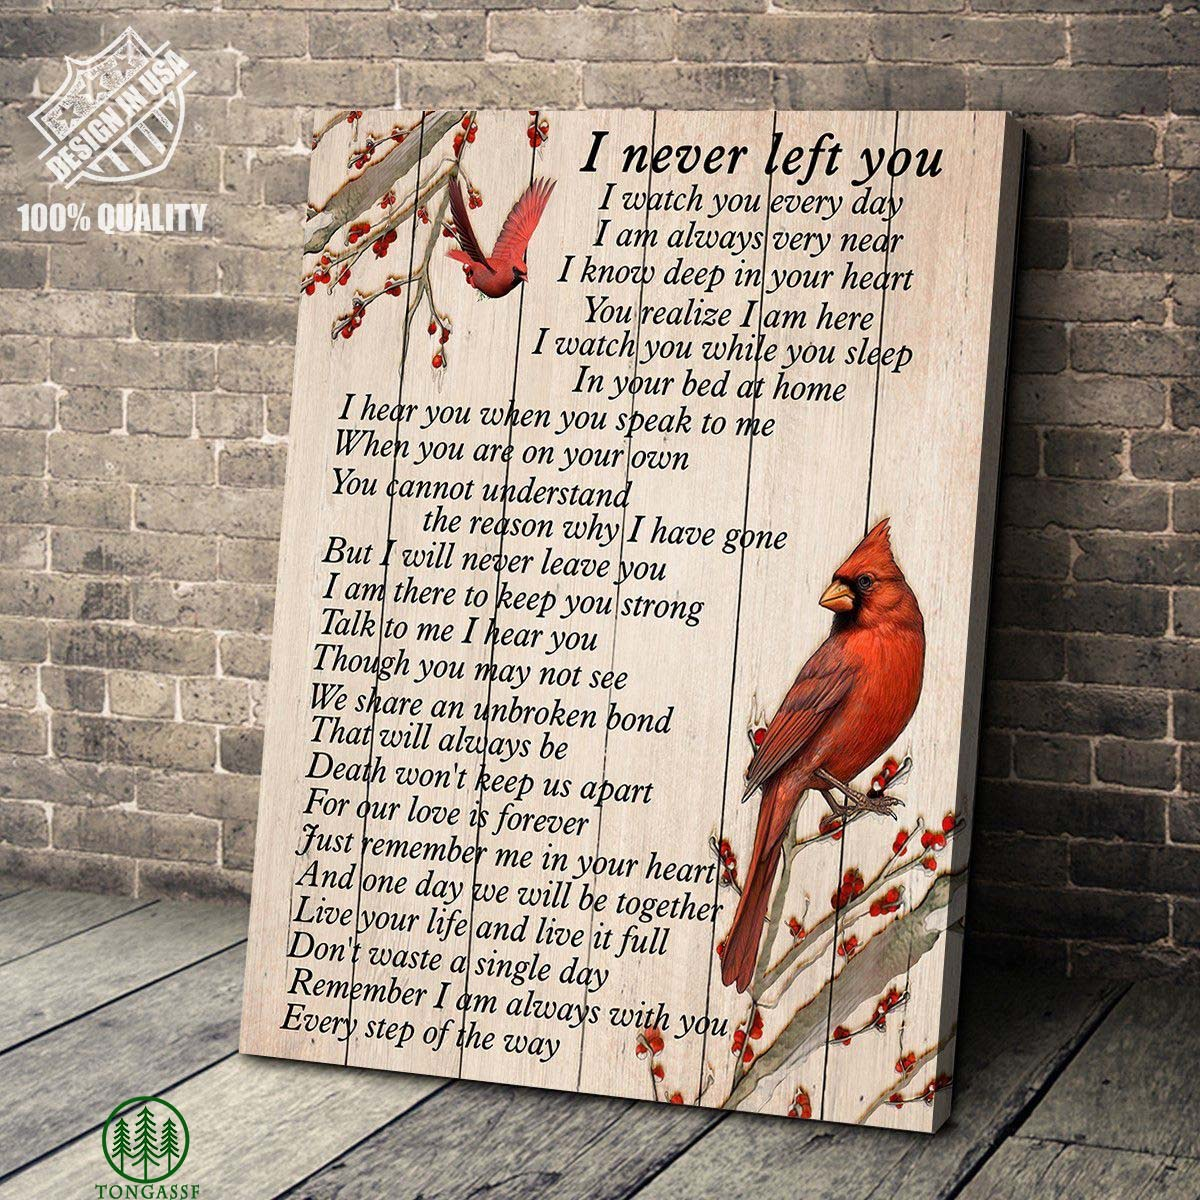 I Never Left You Cardinal Bird Gallery Wrapped Canvas Prints